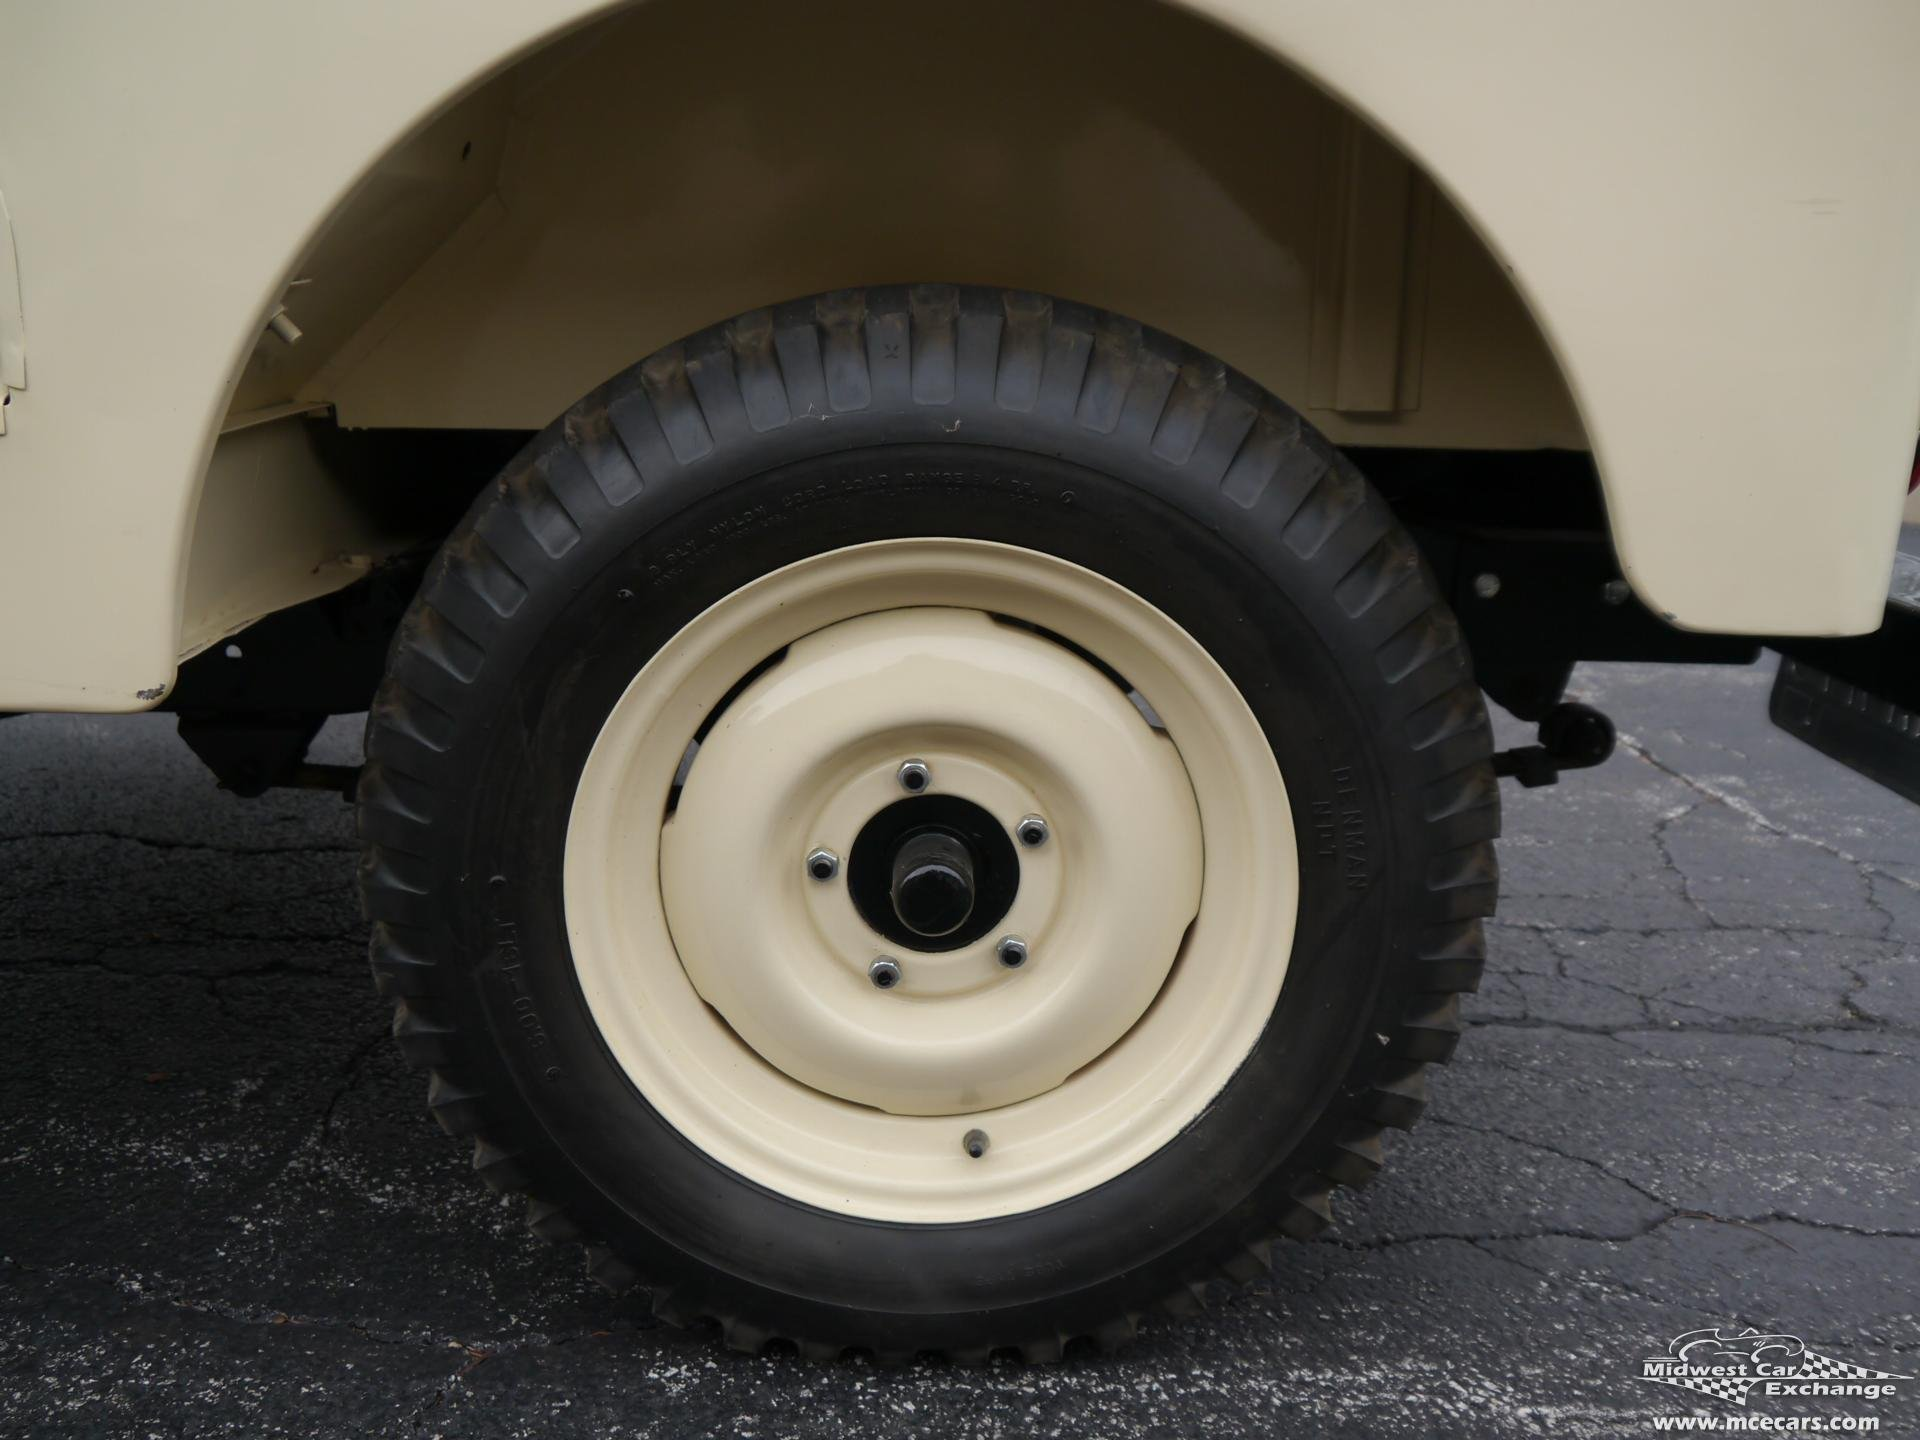 1955 Willys Jeep Midwest Car Exchange Serial Number Location